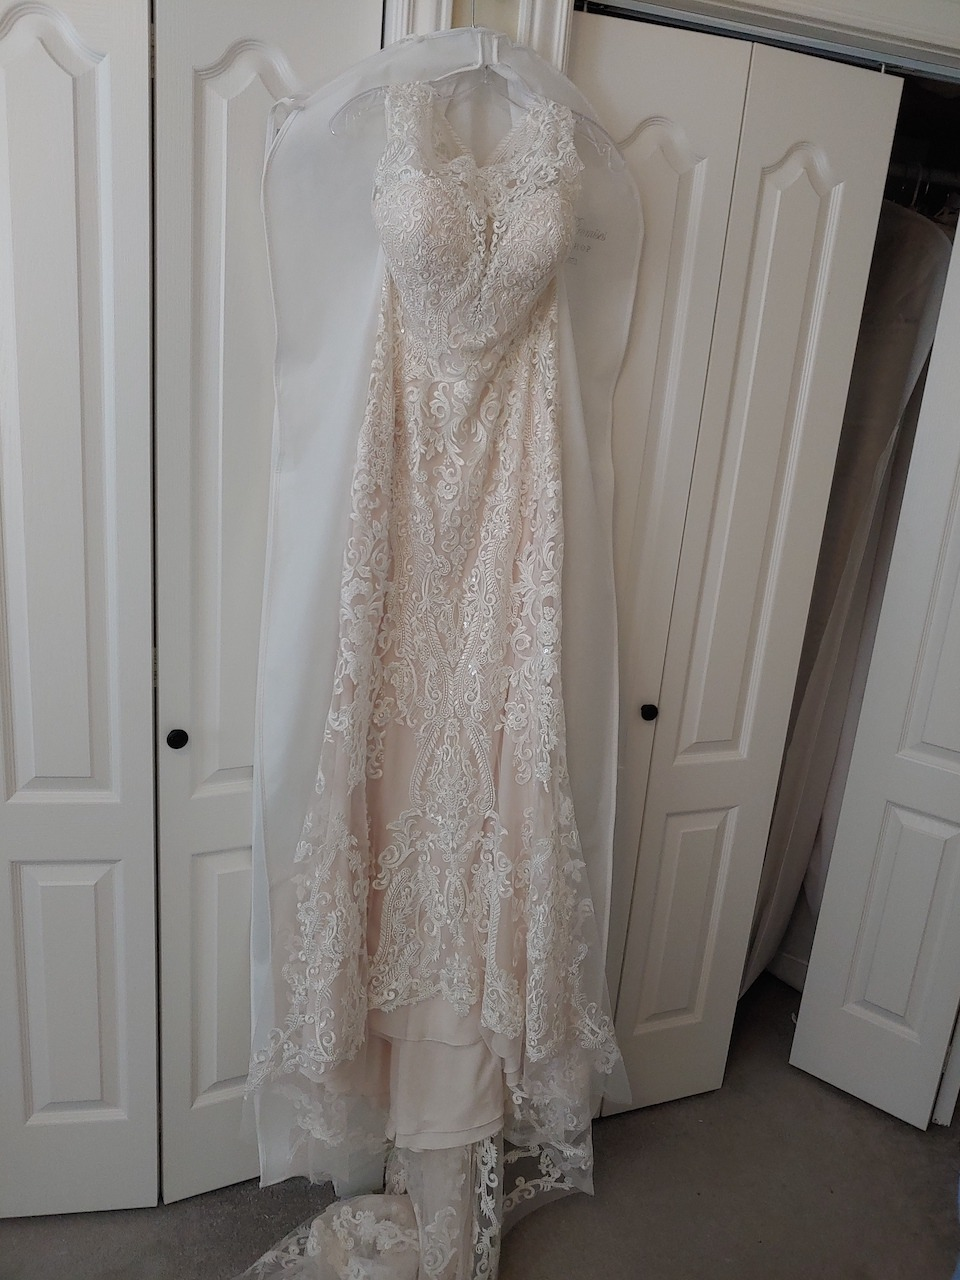 a wedding dress hanging up near a closet featuring a lace hem with netting border